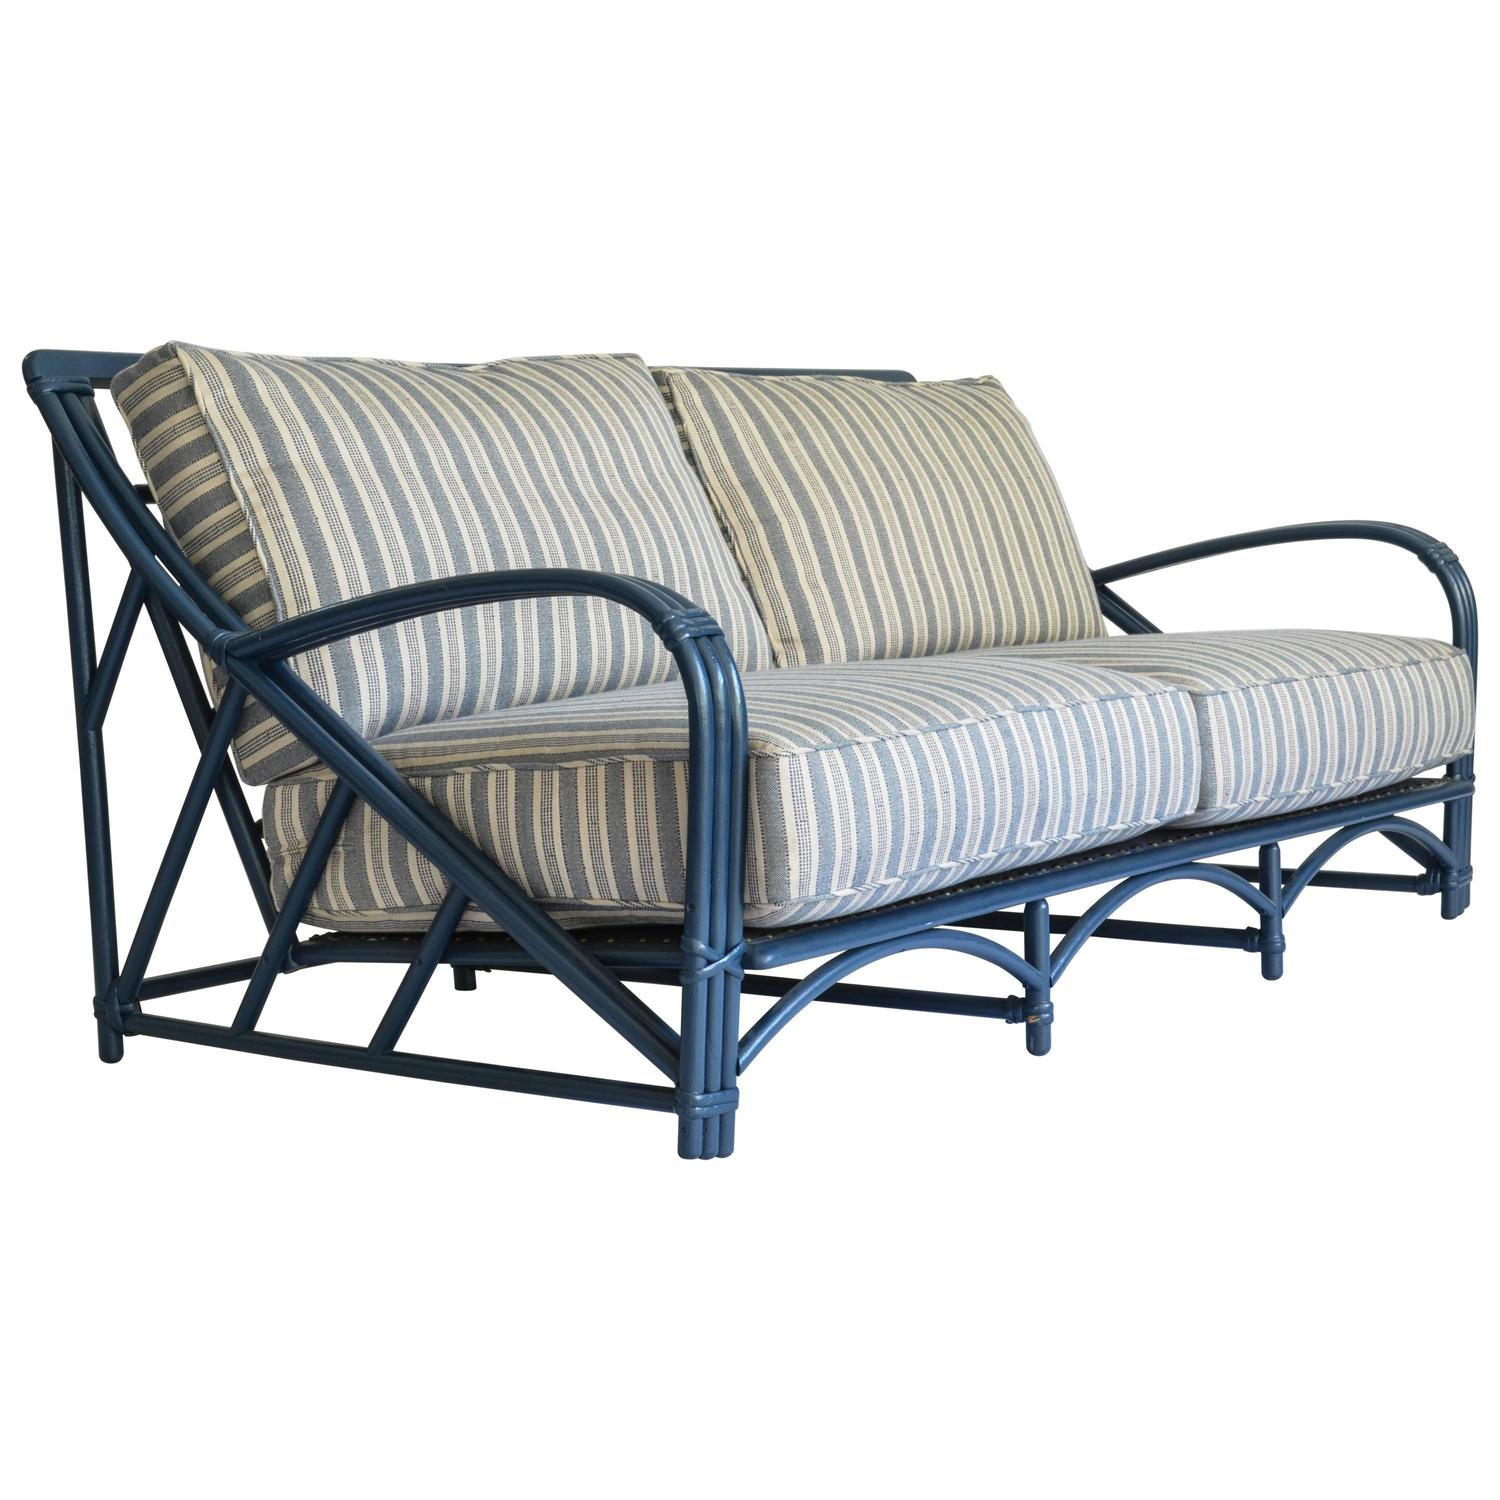 Blue Rattan Sofa With Performance Fabric Upholstery For Sale At 1stdibs